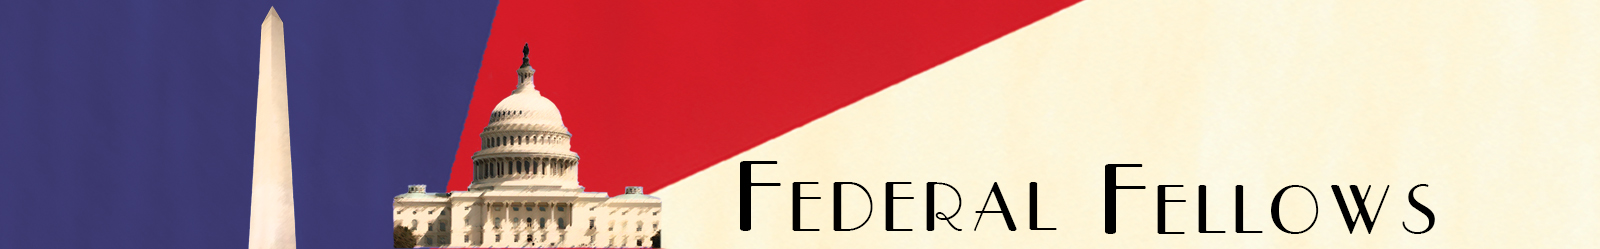 Federal Fellows logo